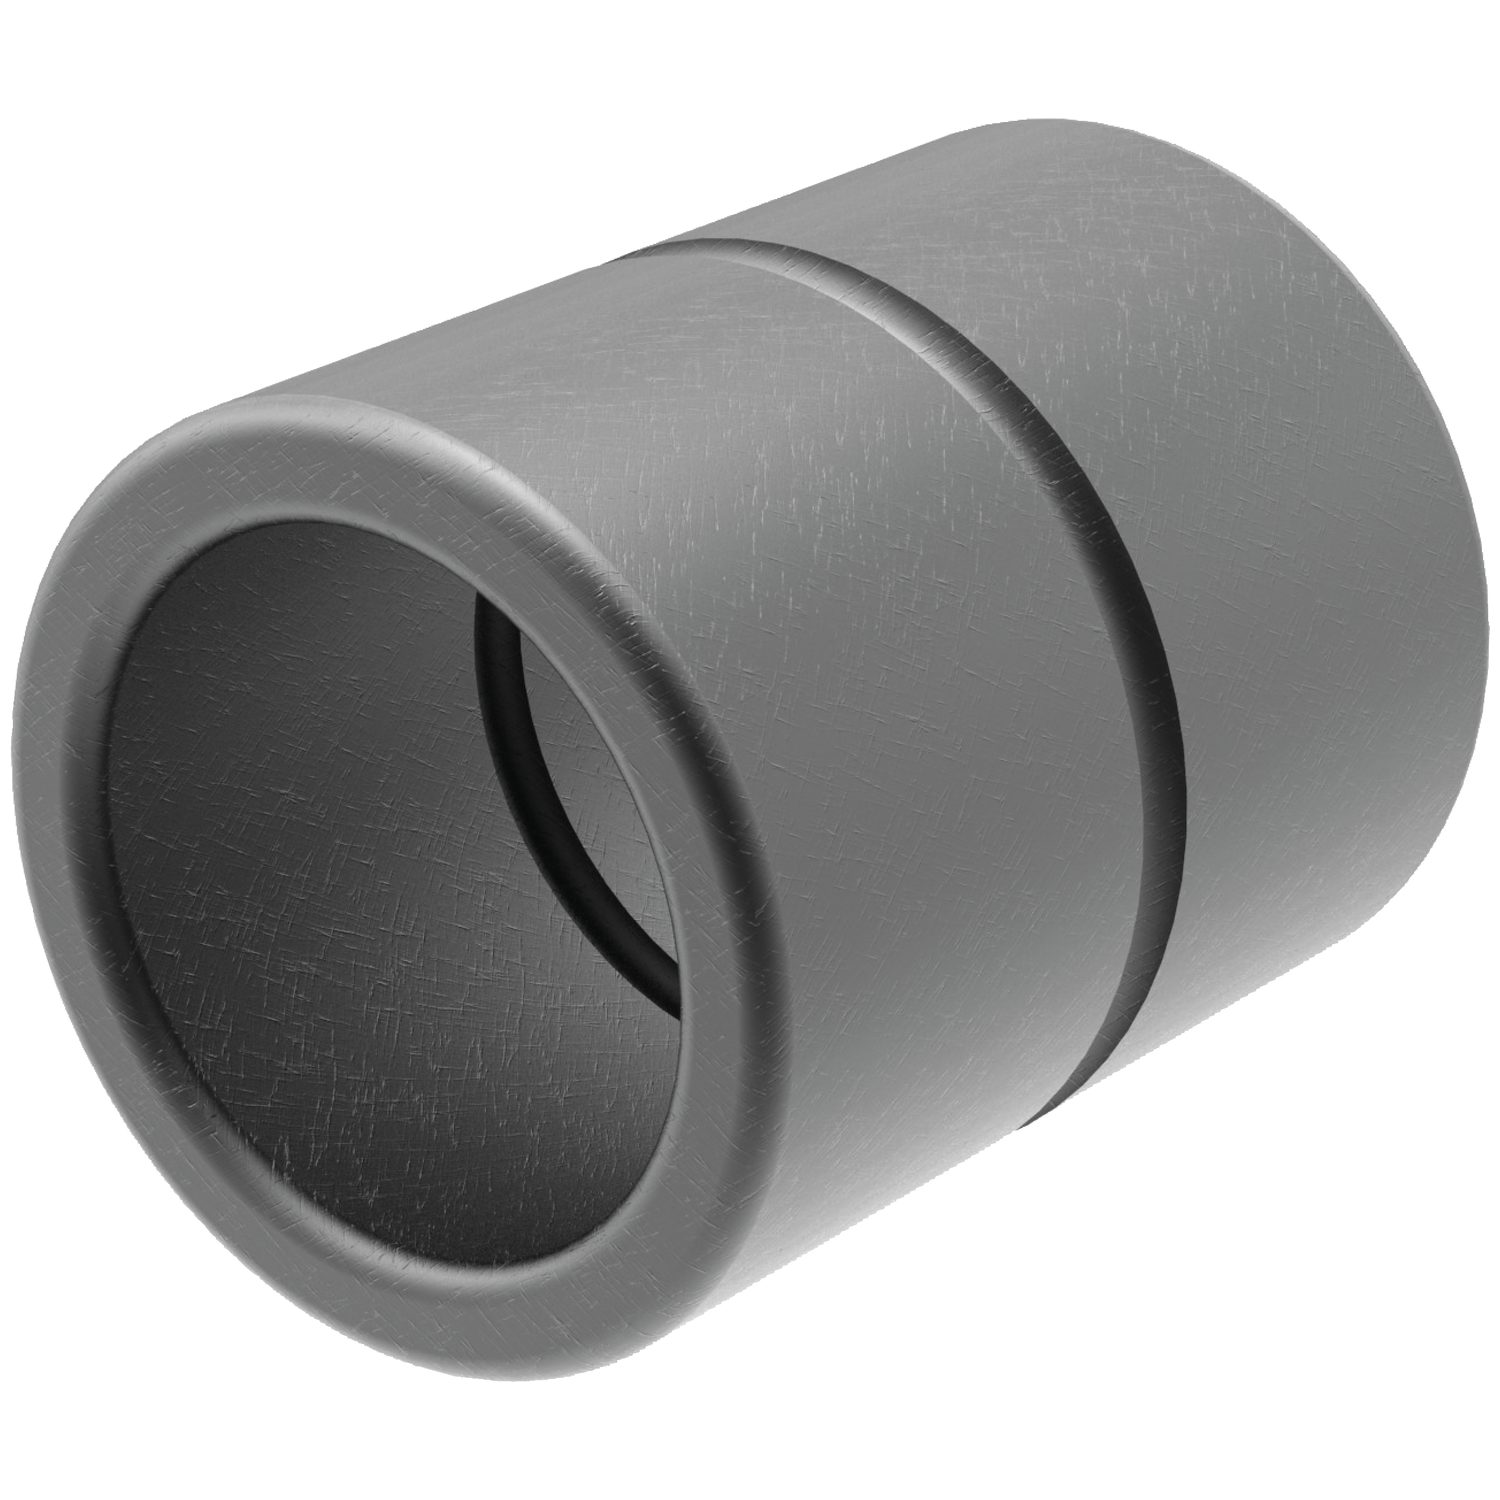 L1768 - Thin Wall Ceramic Linear Bearings